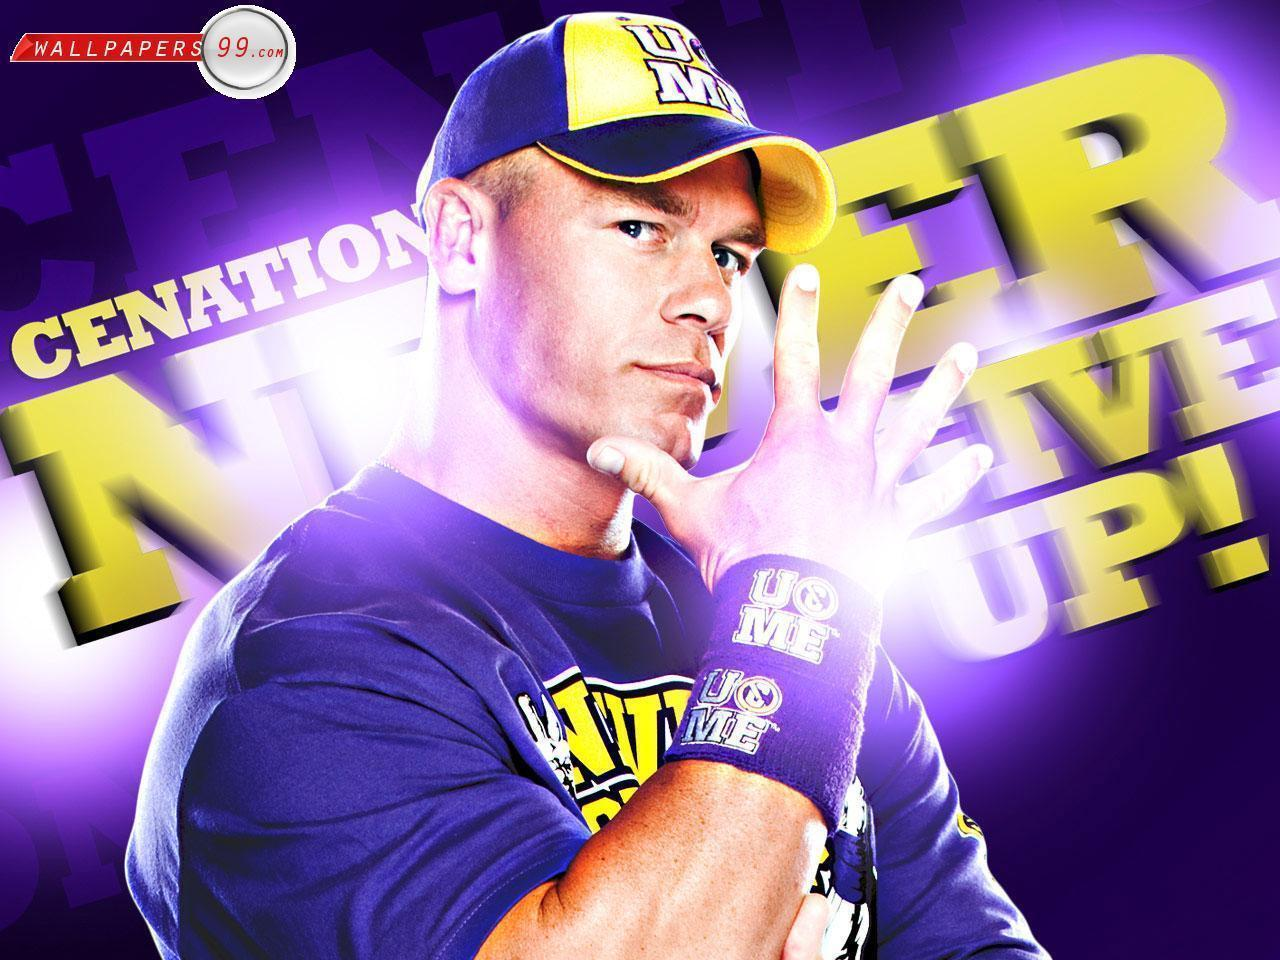 john cena hd wallpapers 2015 wallpaper cave